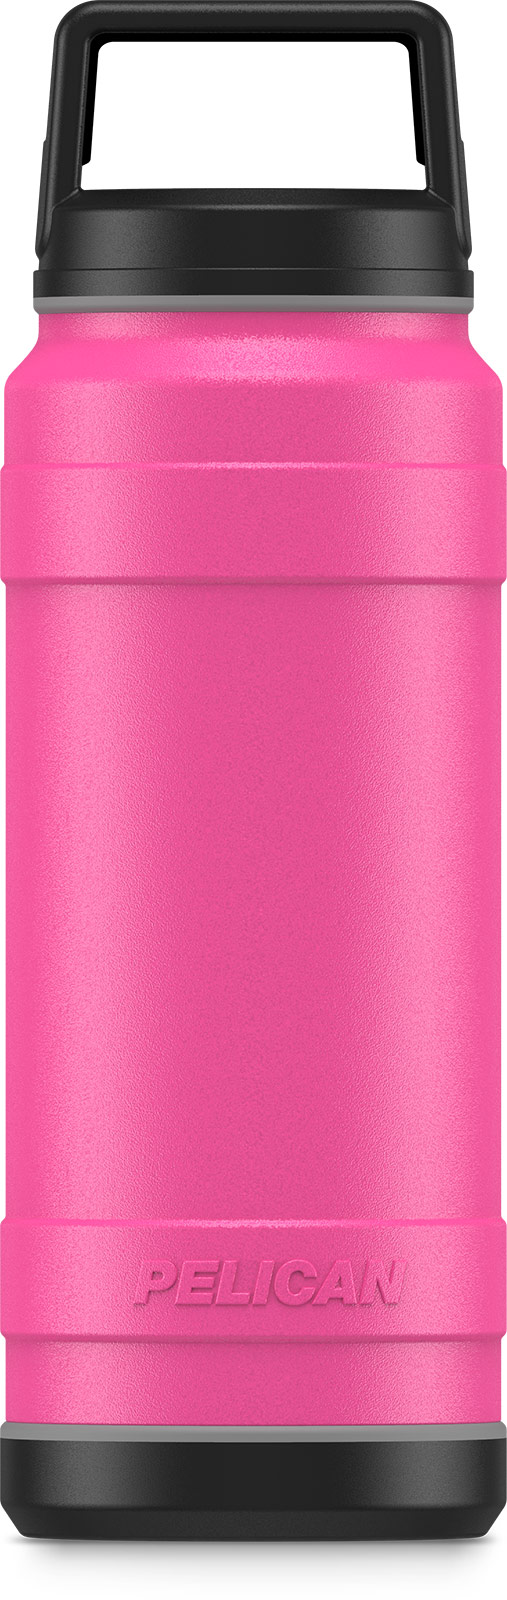 pelican pink 32oz stainess steel bottle